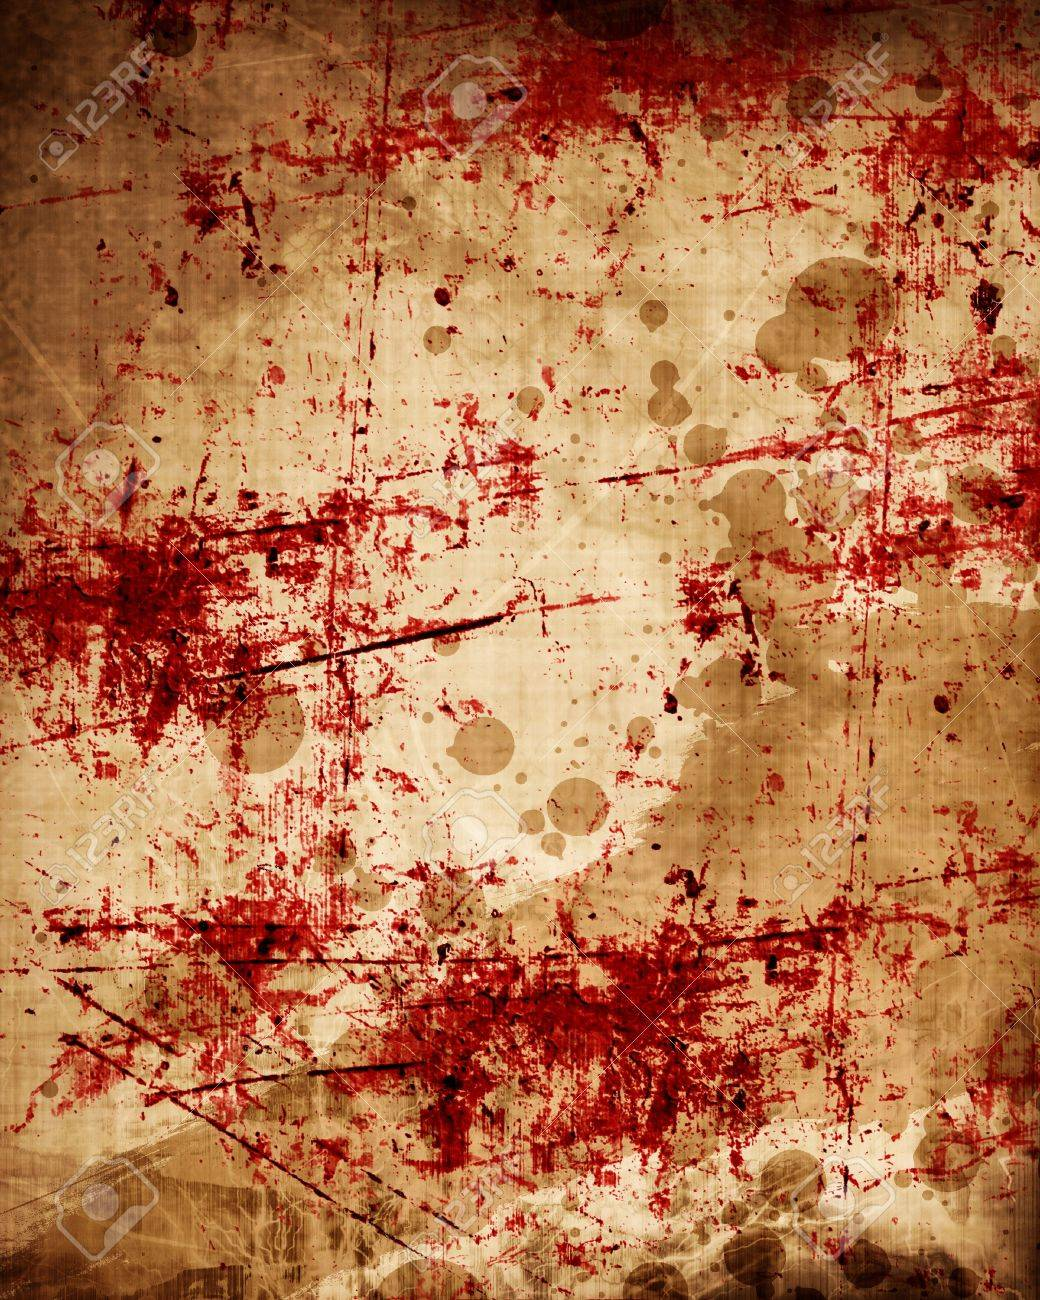 Grunge Background With Some Red Blood Splatter On It Stock Photo Picture And Royalty Free Image Image 22103405 Old red plaster wall texture. grunge background with some red blood splatter on it